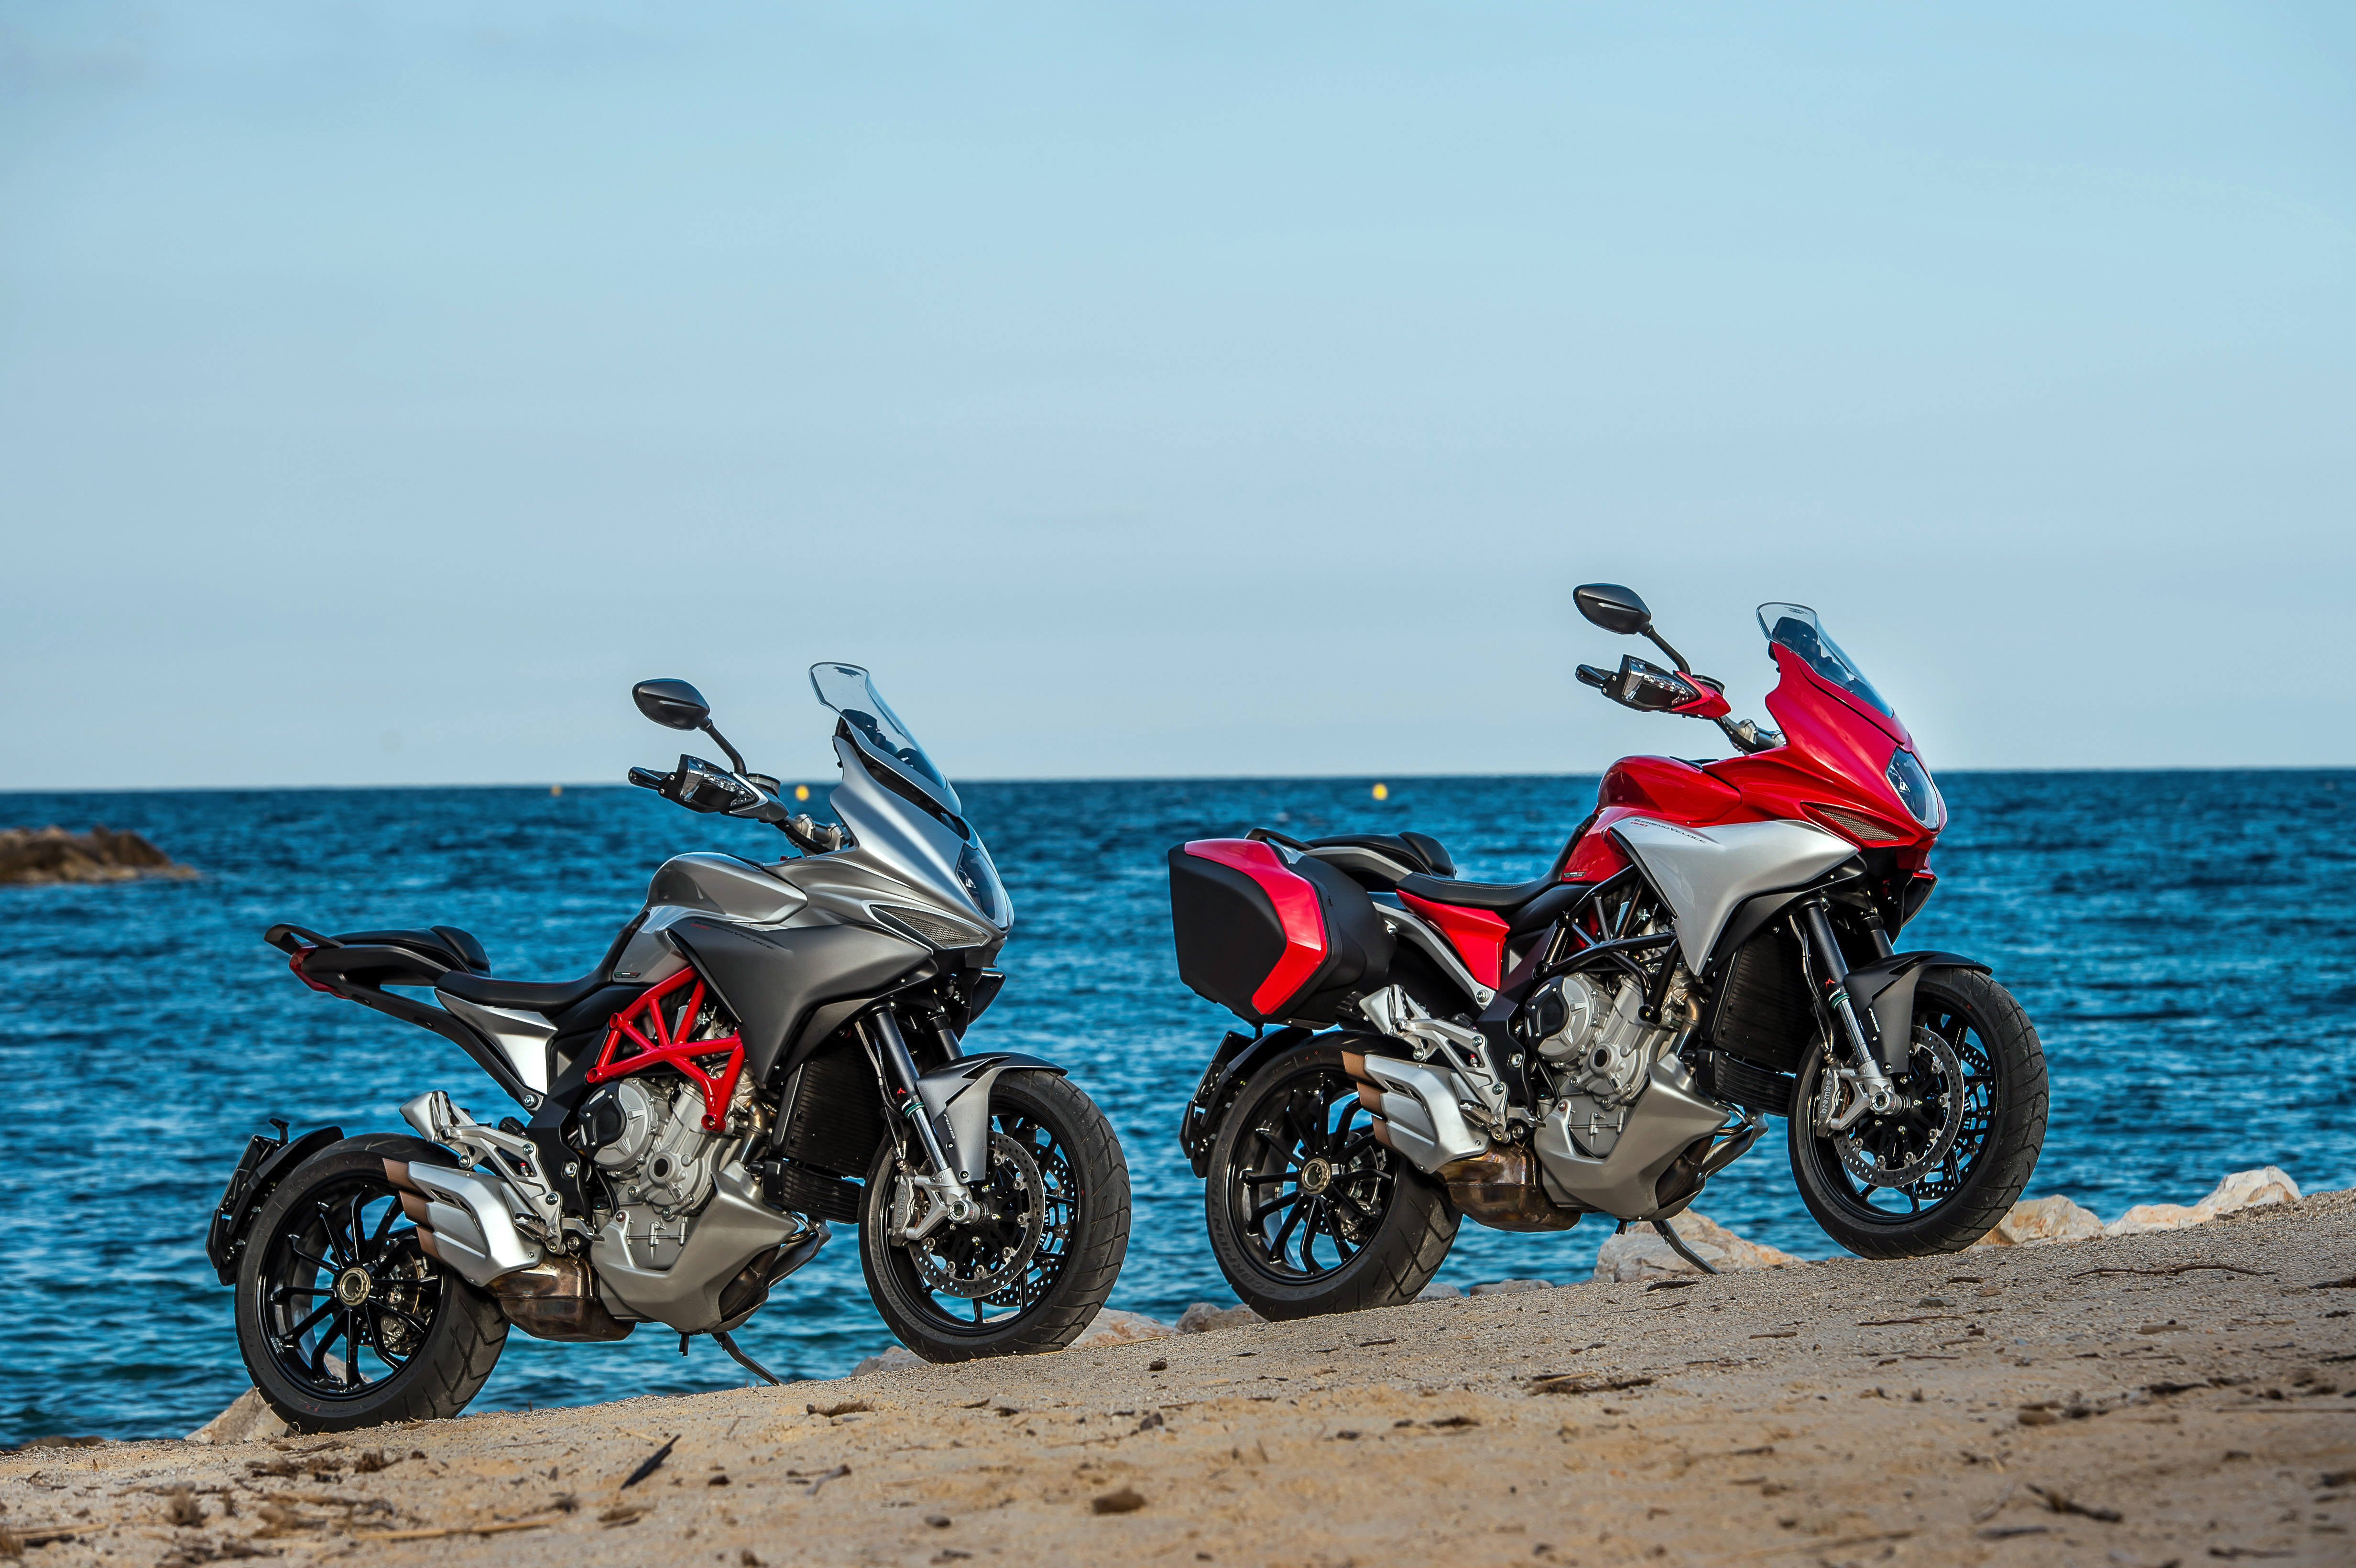 First ride: MV Agusta Turismo Veloce 800 review